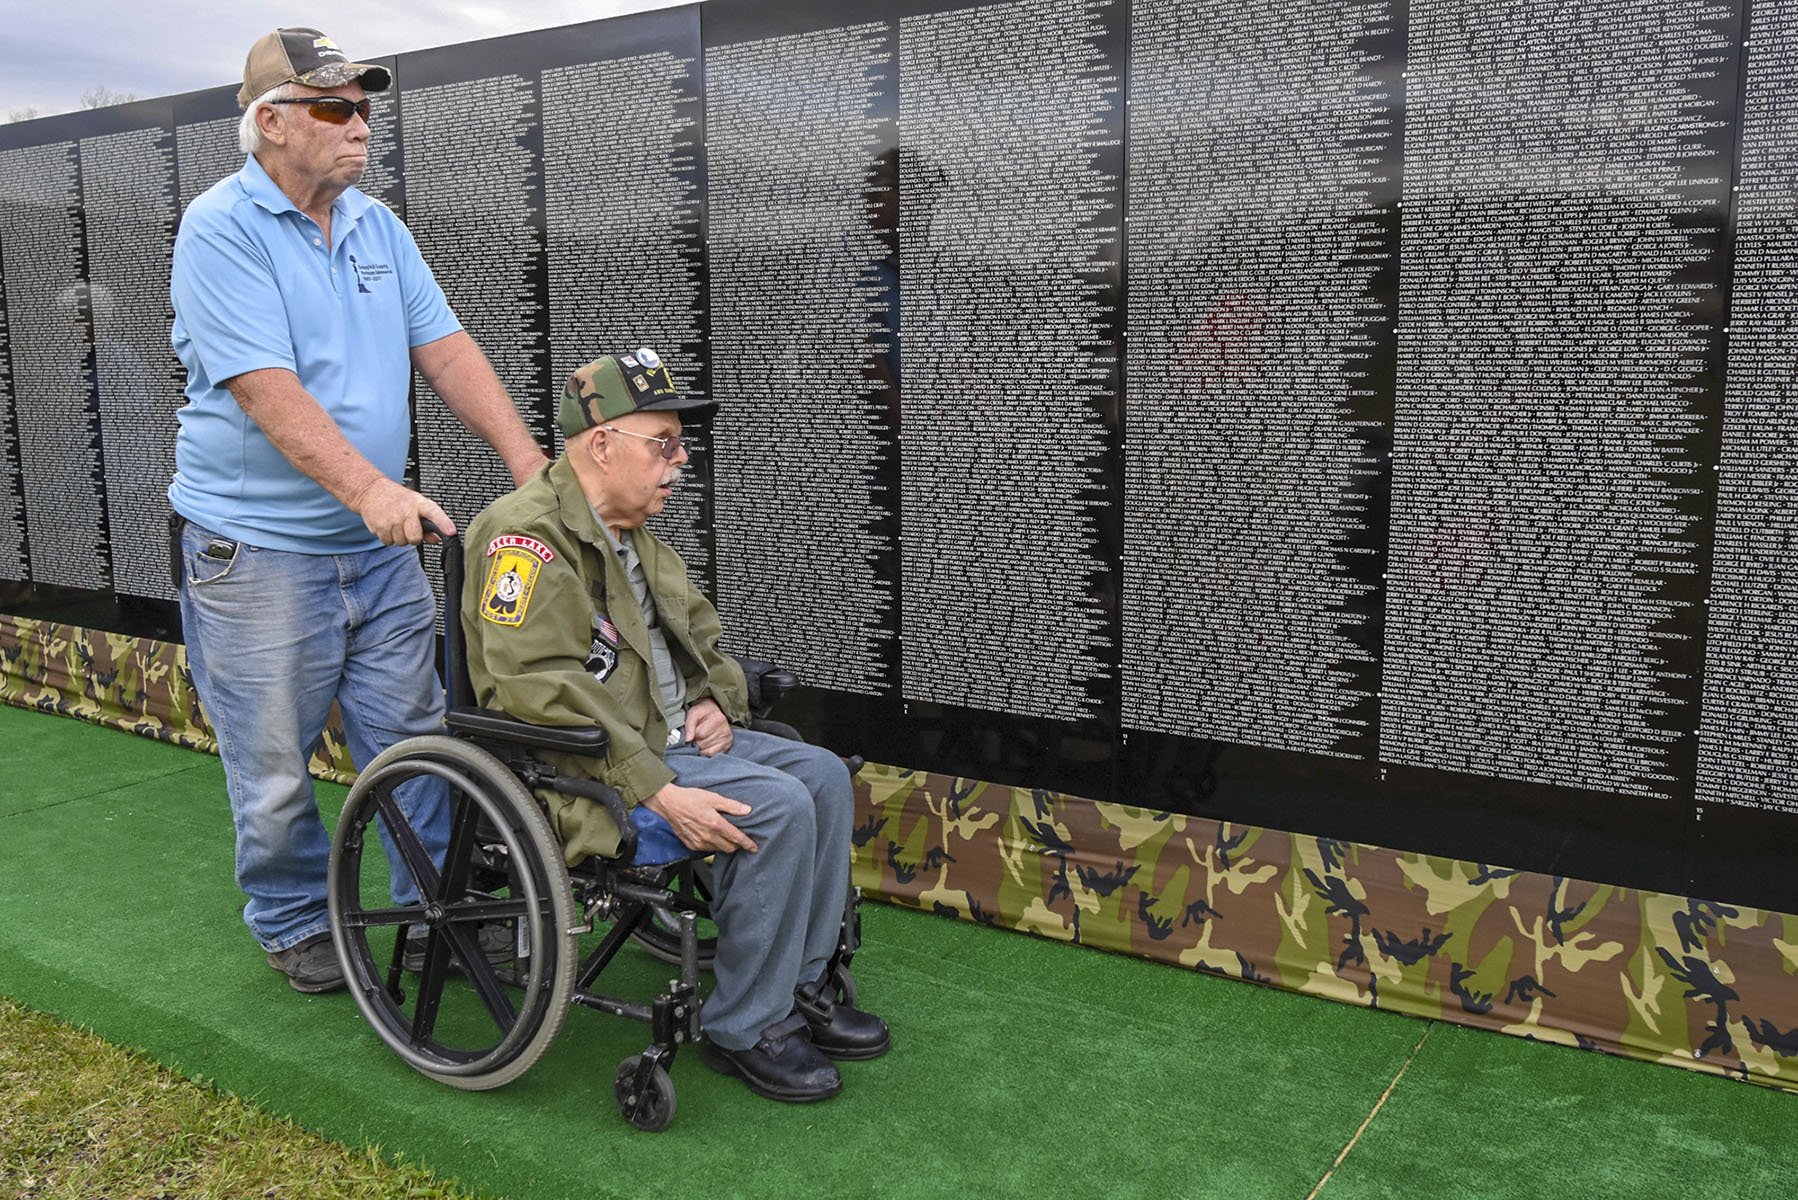 Navy veteran Kermit Snyder, left, and Army veteran John A. Koch view The Moving Wall Vietnam Veterans Memorial at Island Park in Schuylkill Haven, Pennsylvania. (Jacqueline Dormer/The Republican-Herald via AP)